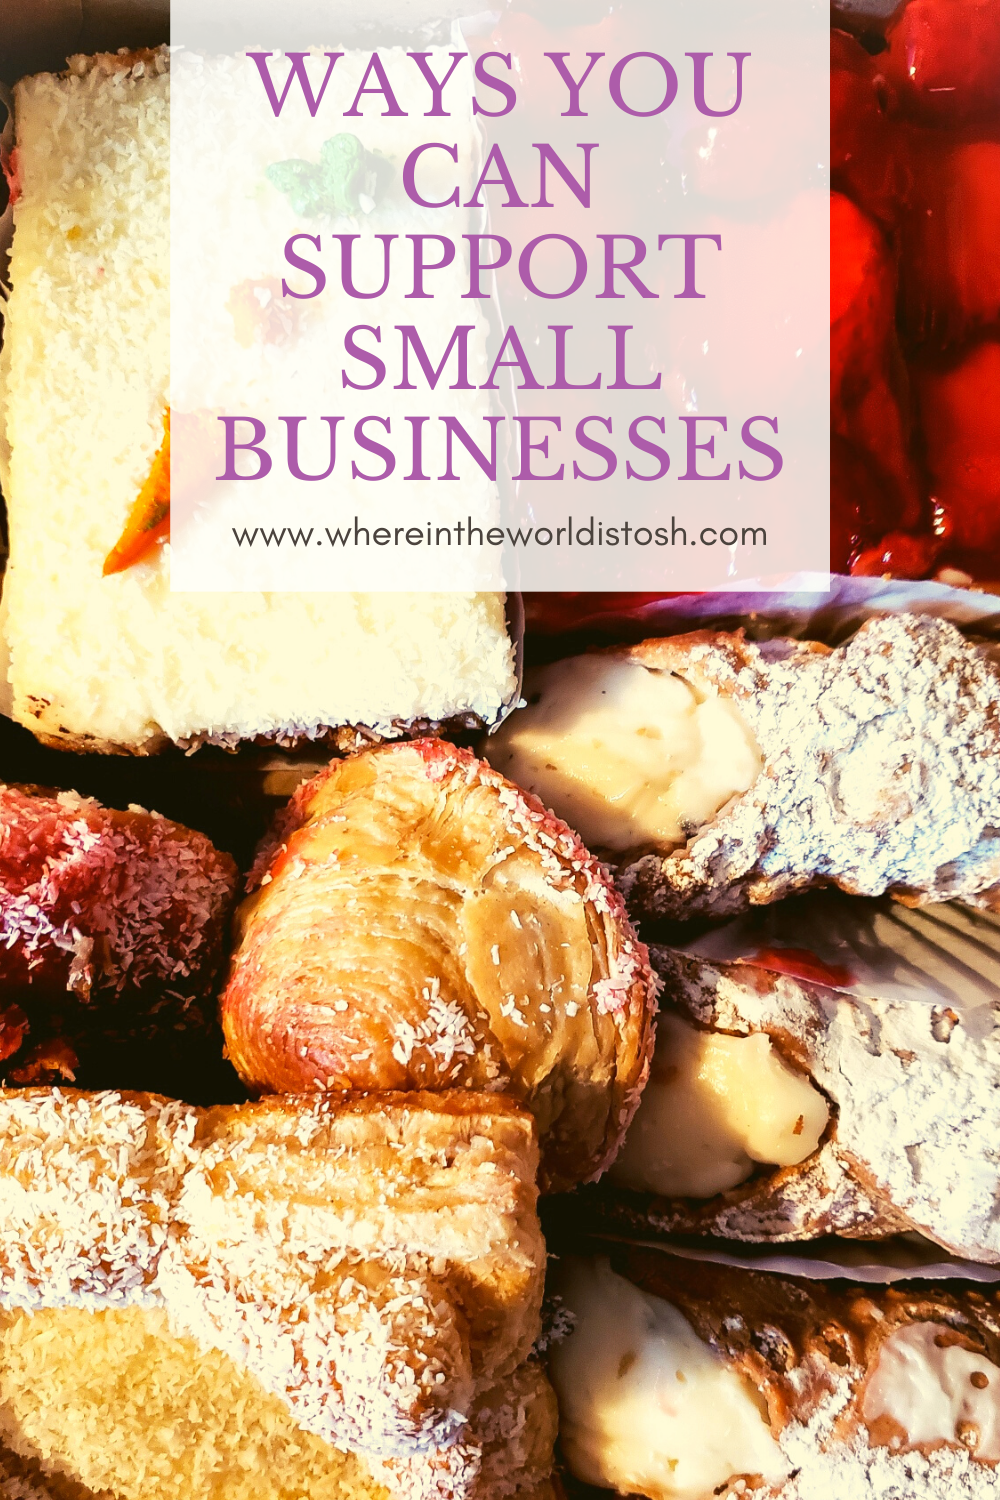 Ways You Can Support Small Businesses